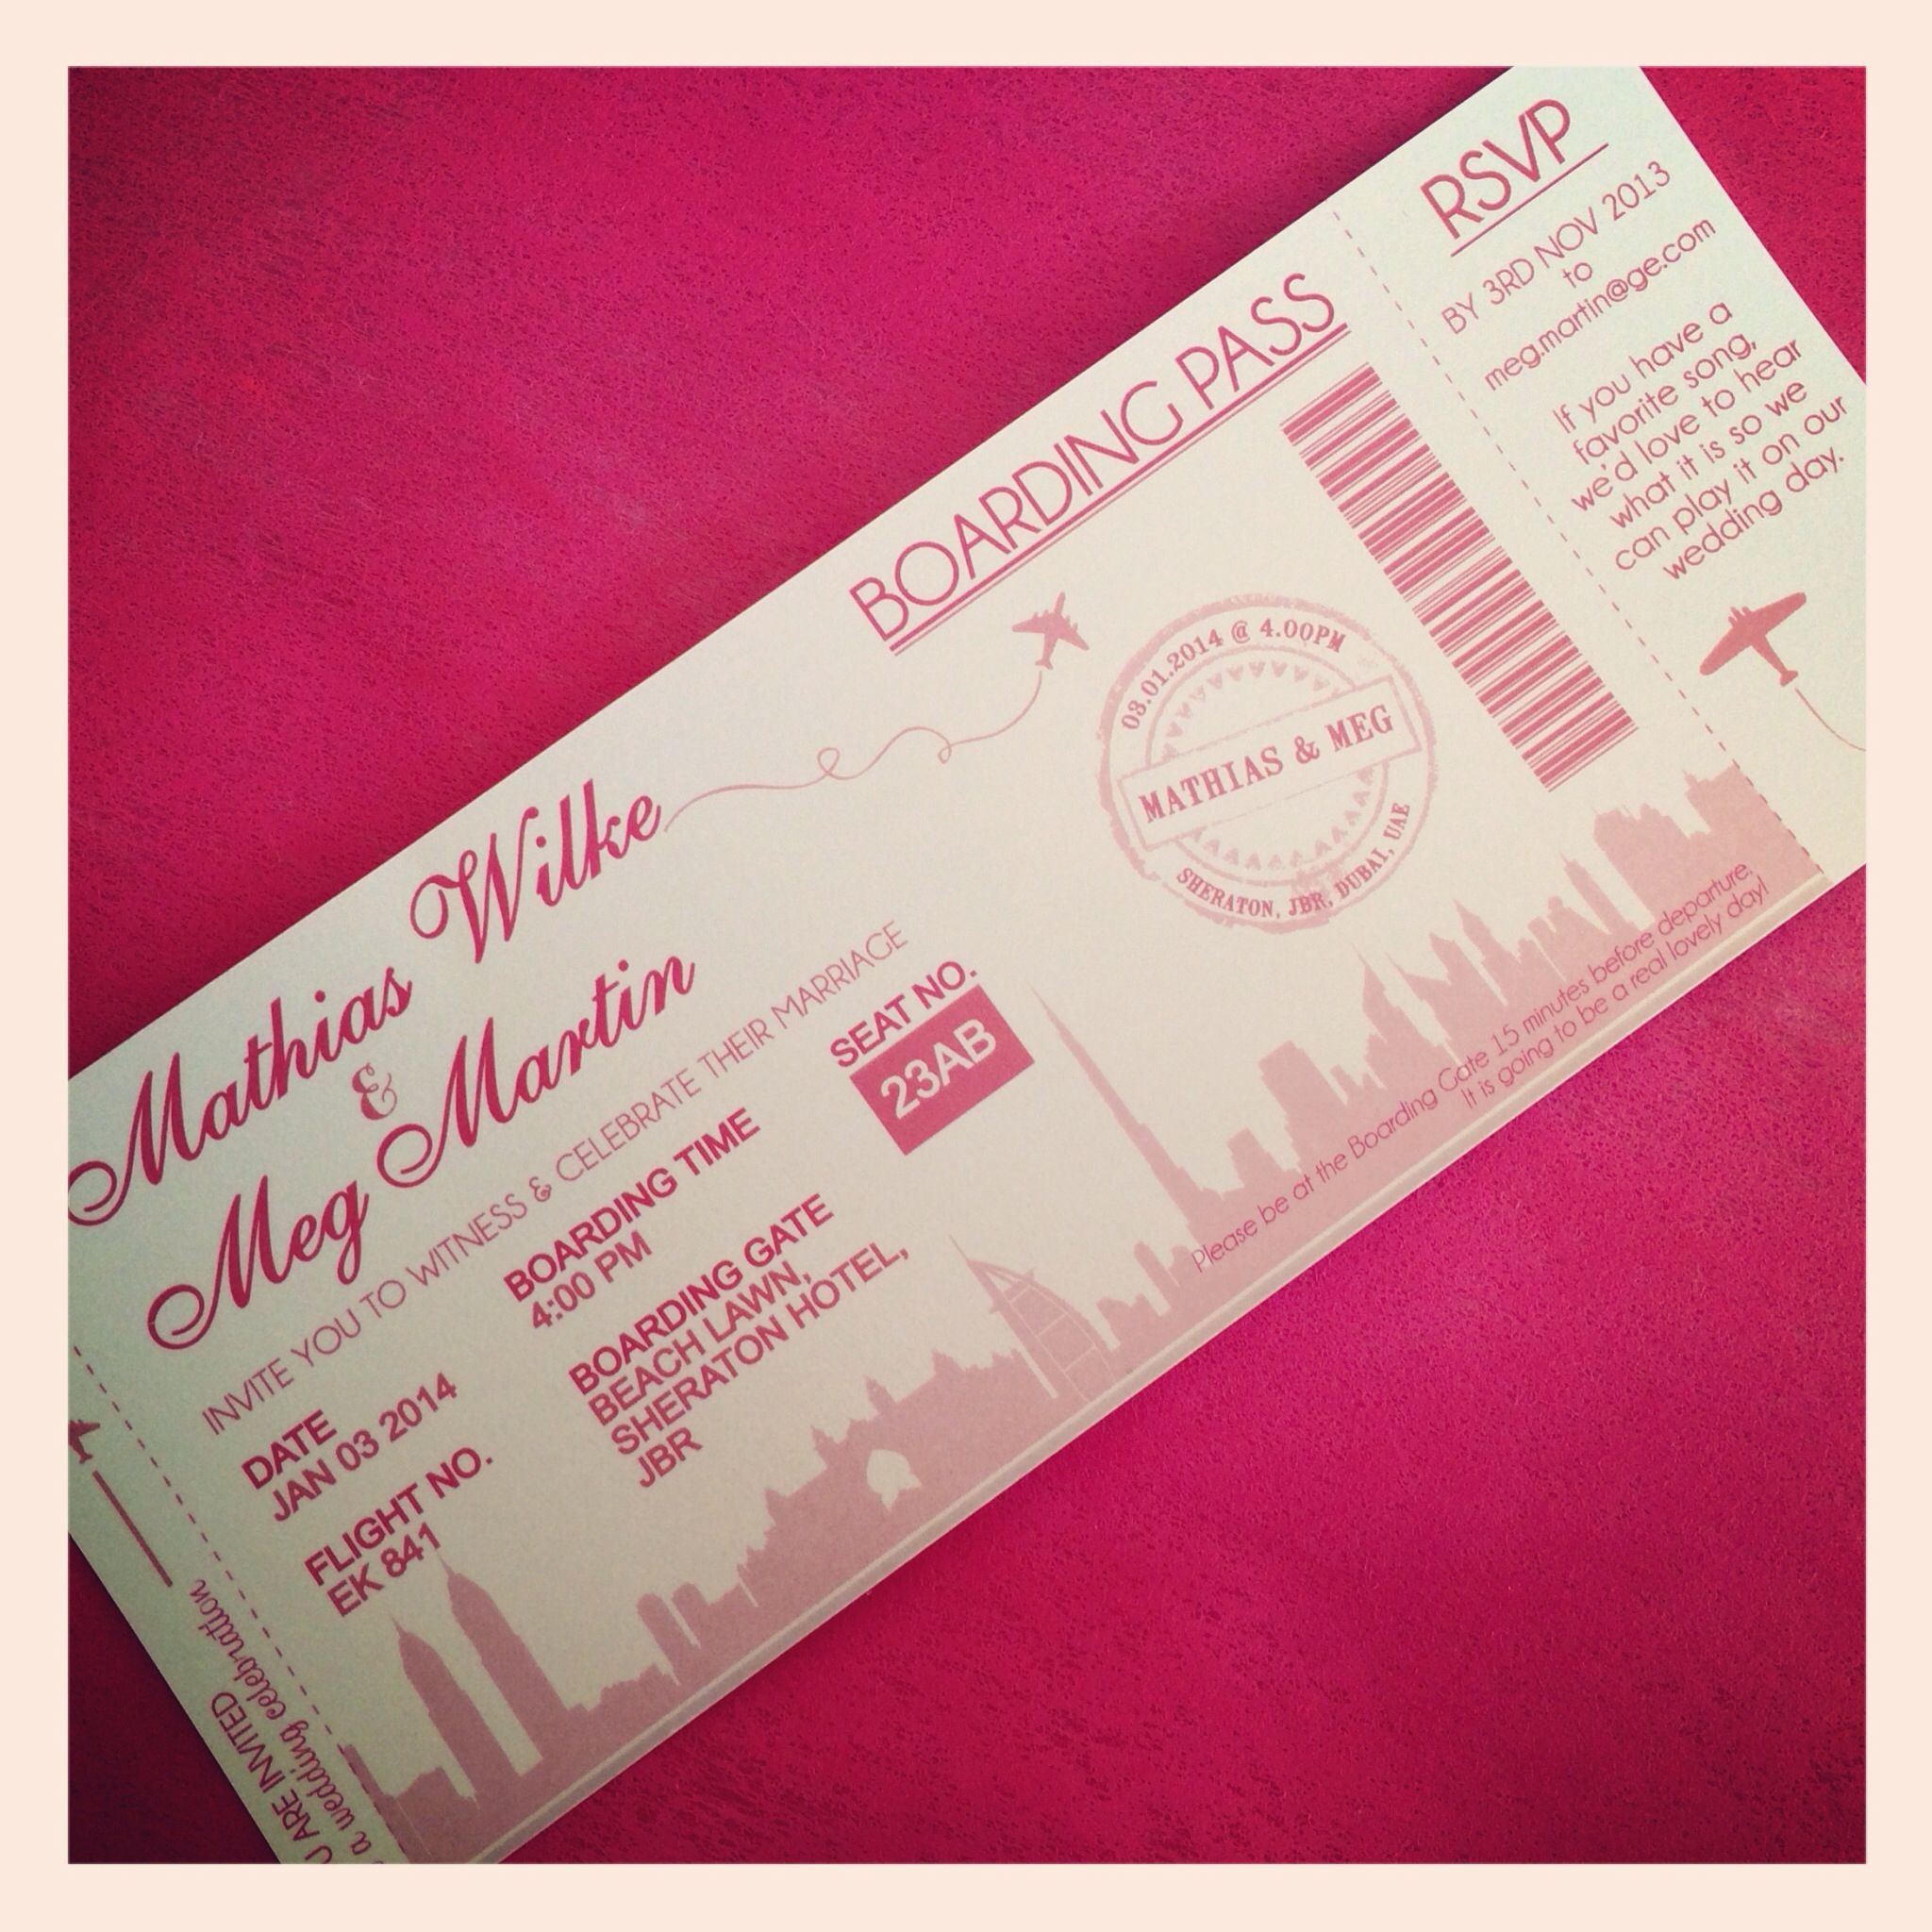 Boarding Pass Invite for going away party! @Onjalai Flake | Going ...